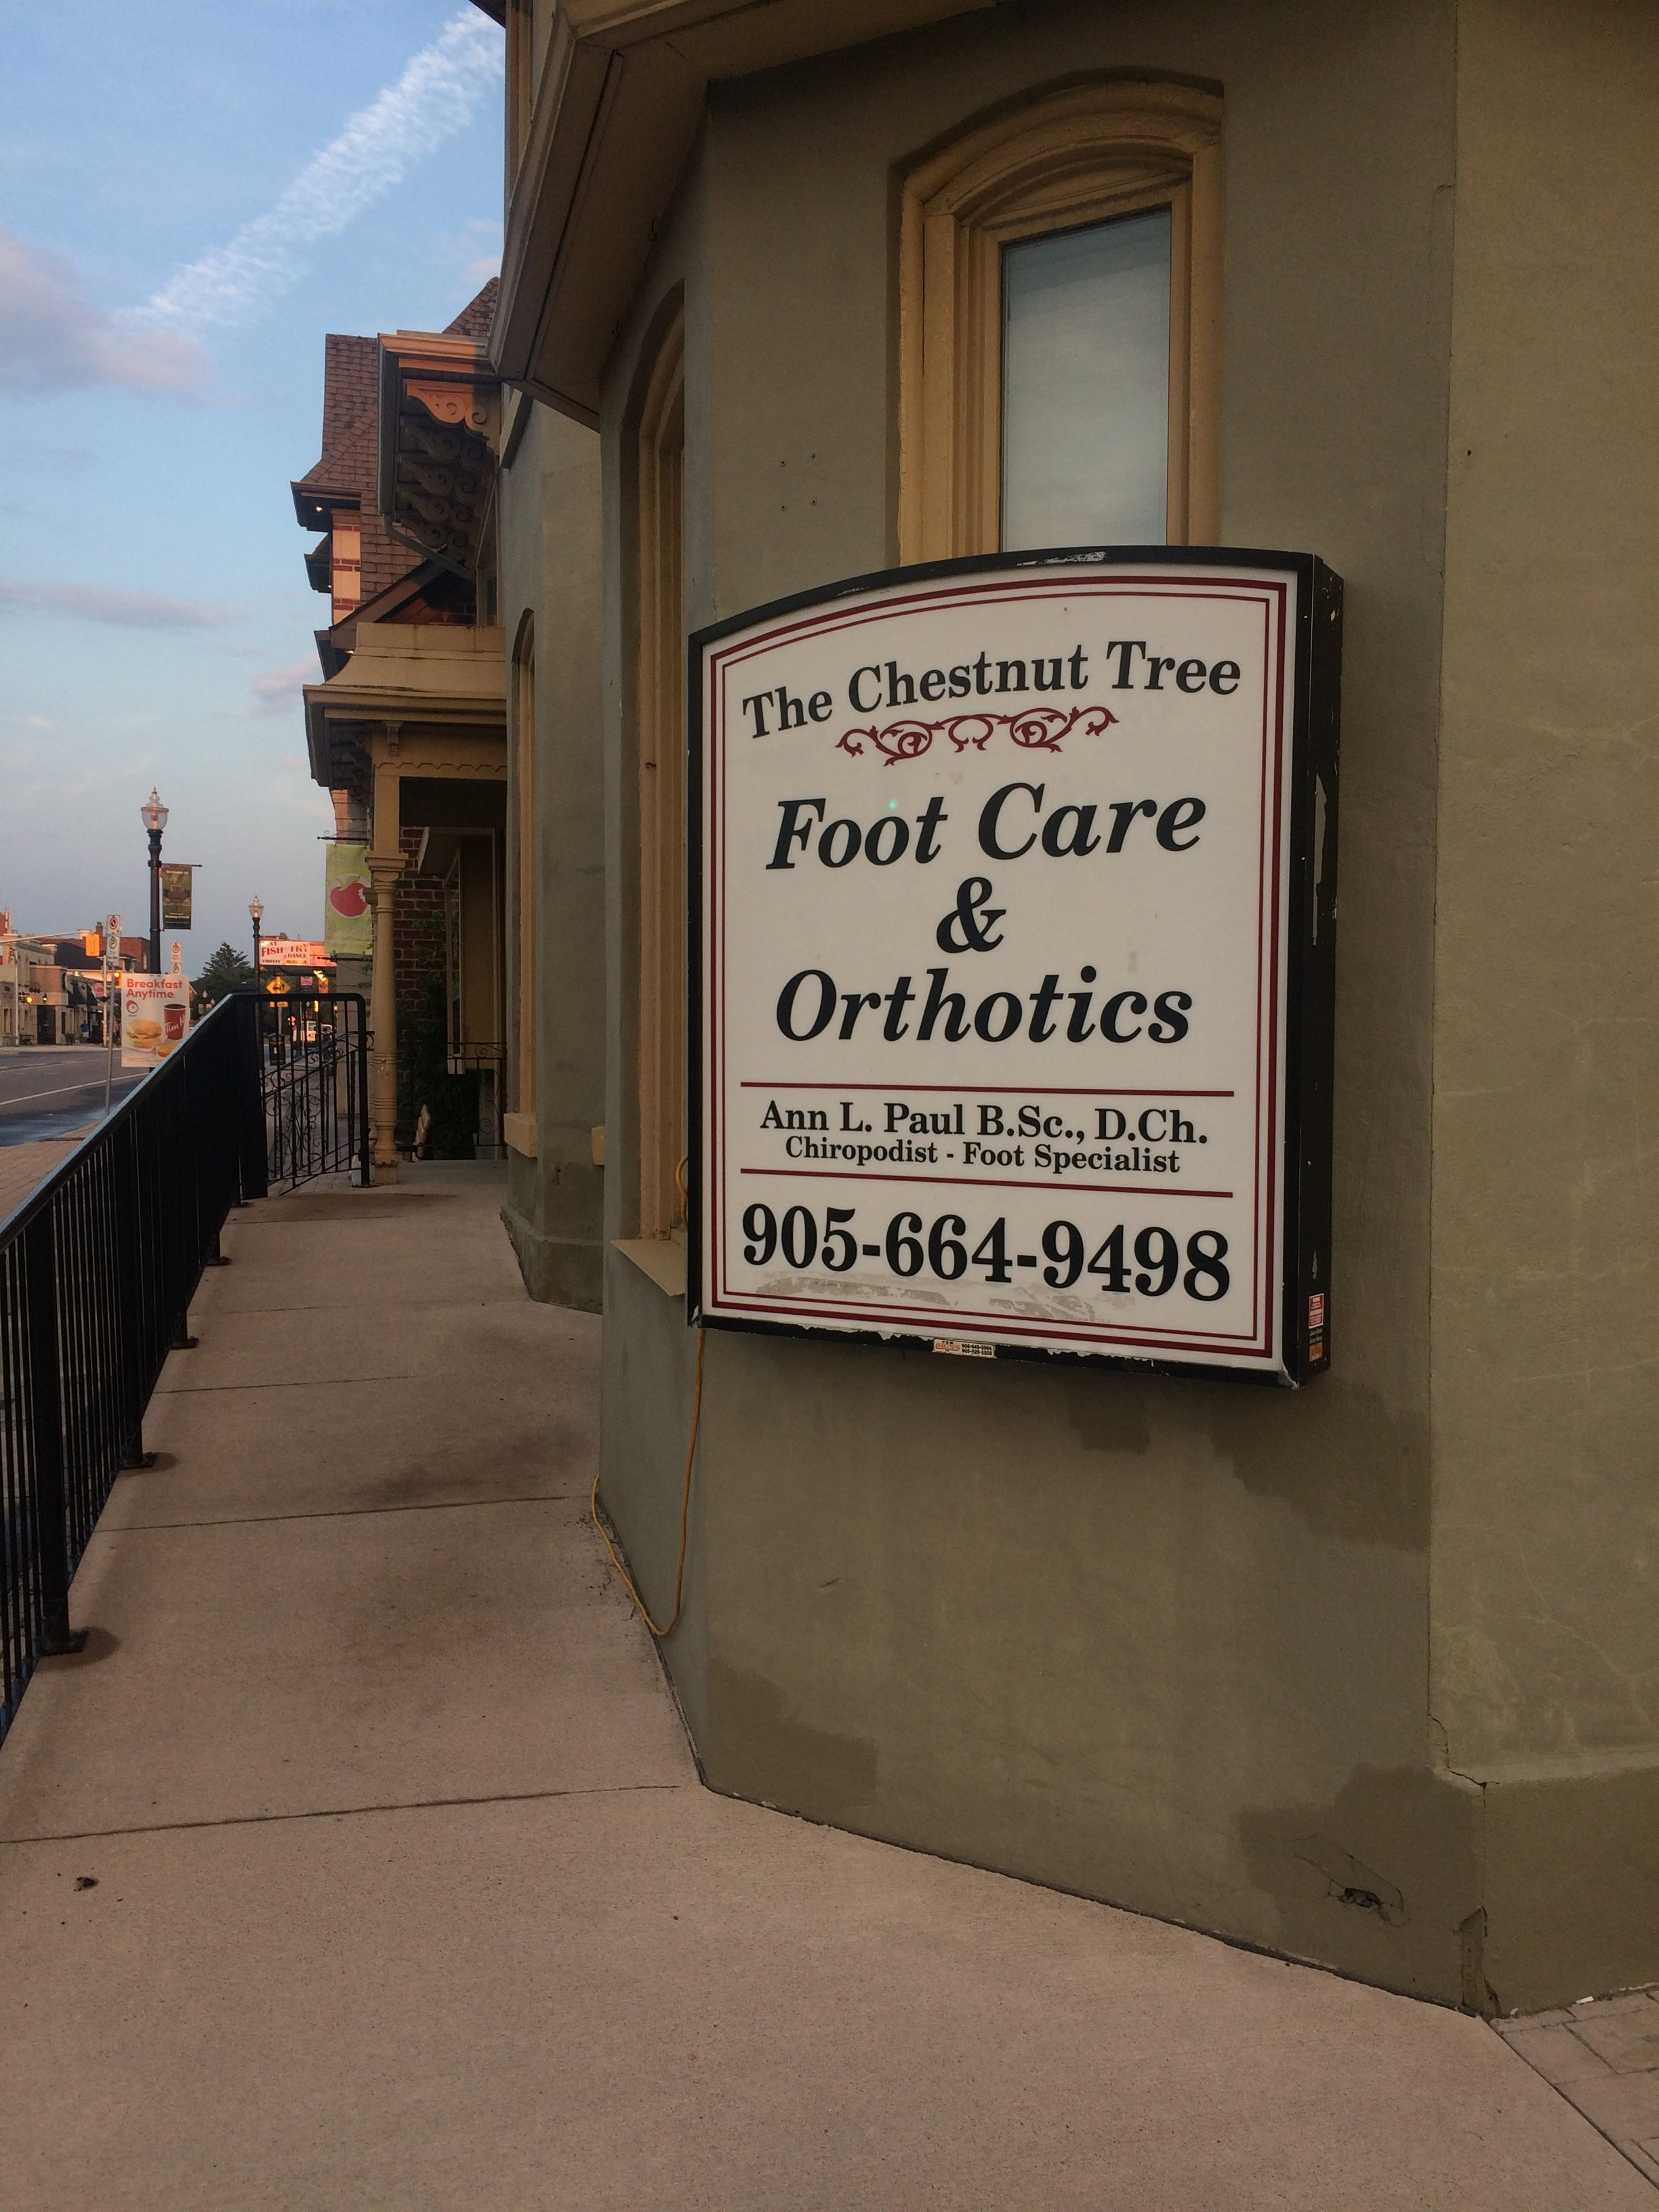 Chestnut Tree Foot Care and Orthotics